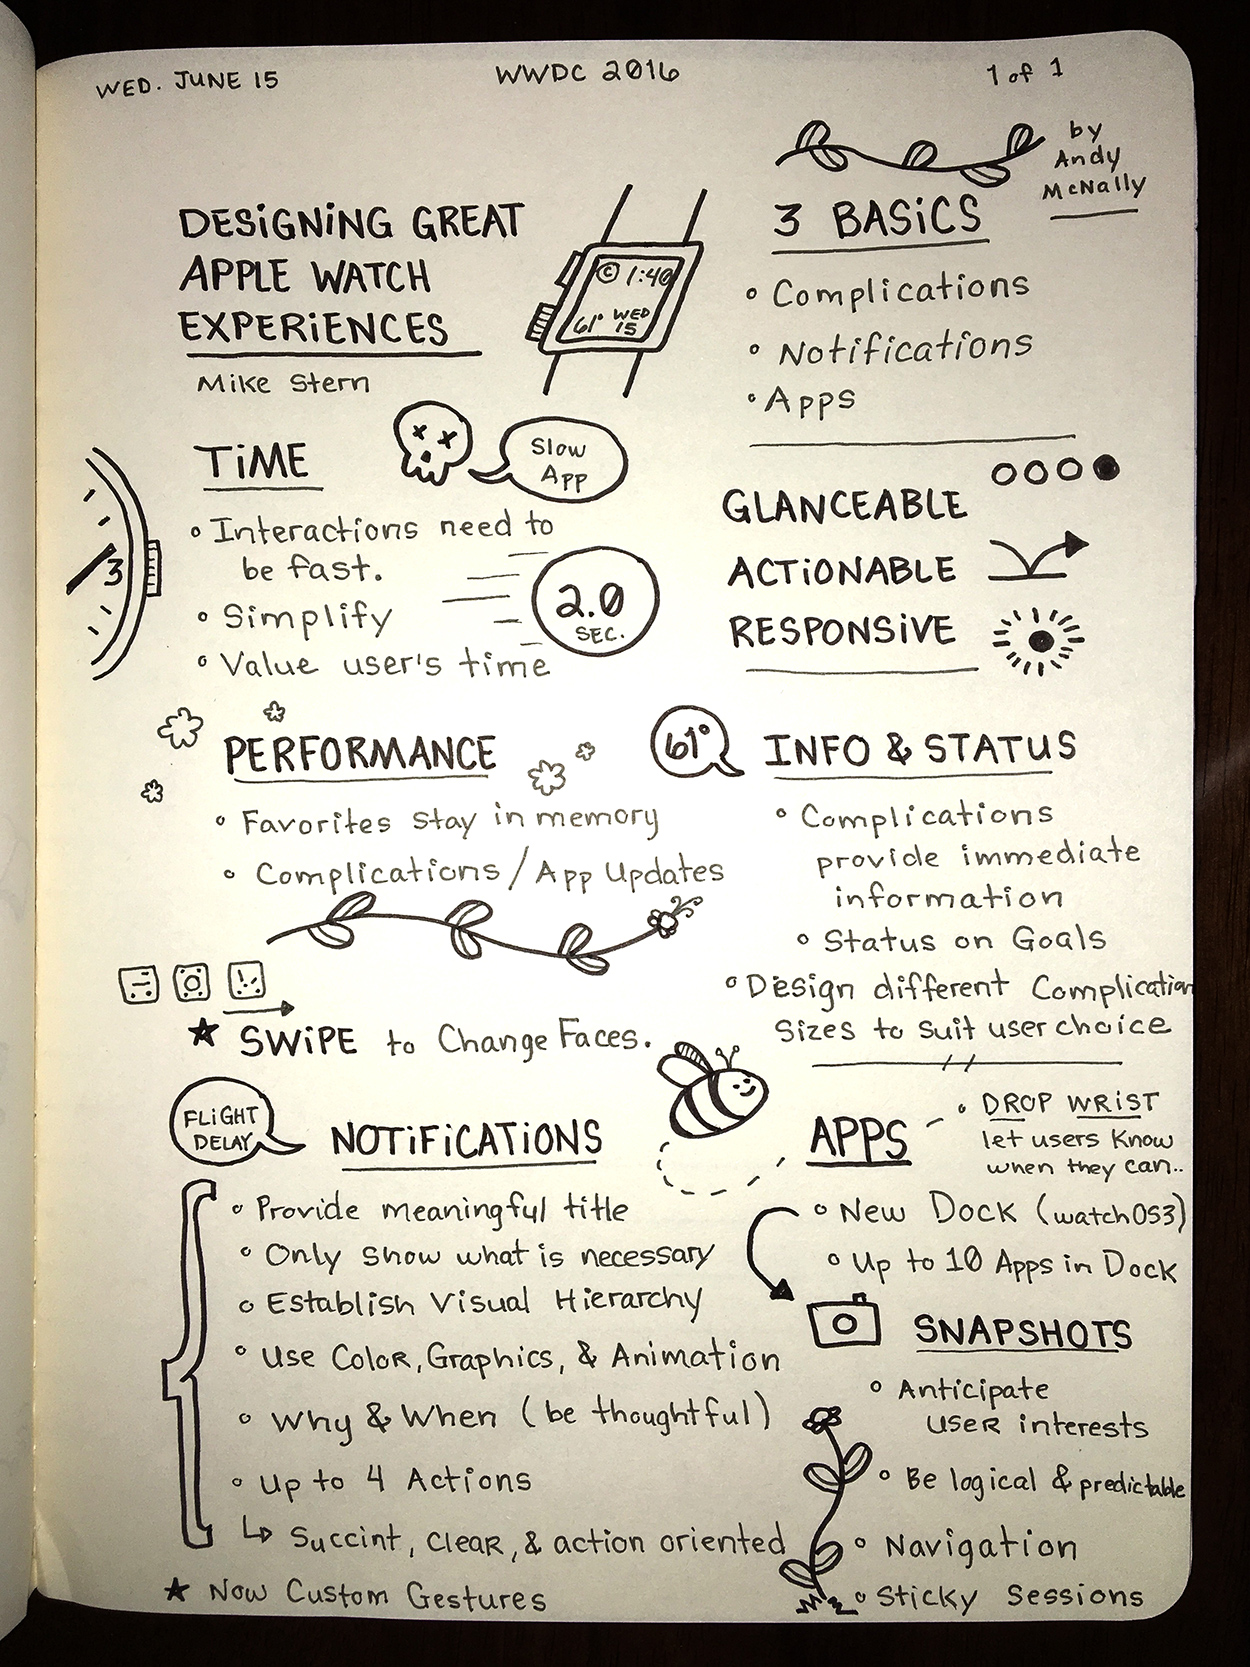 WWDC sketchnotes - Designing Great Apple Watch Experiences